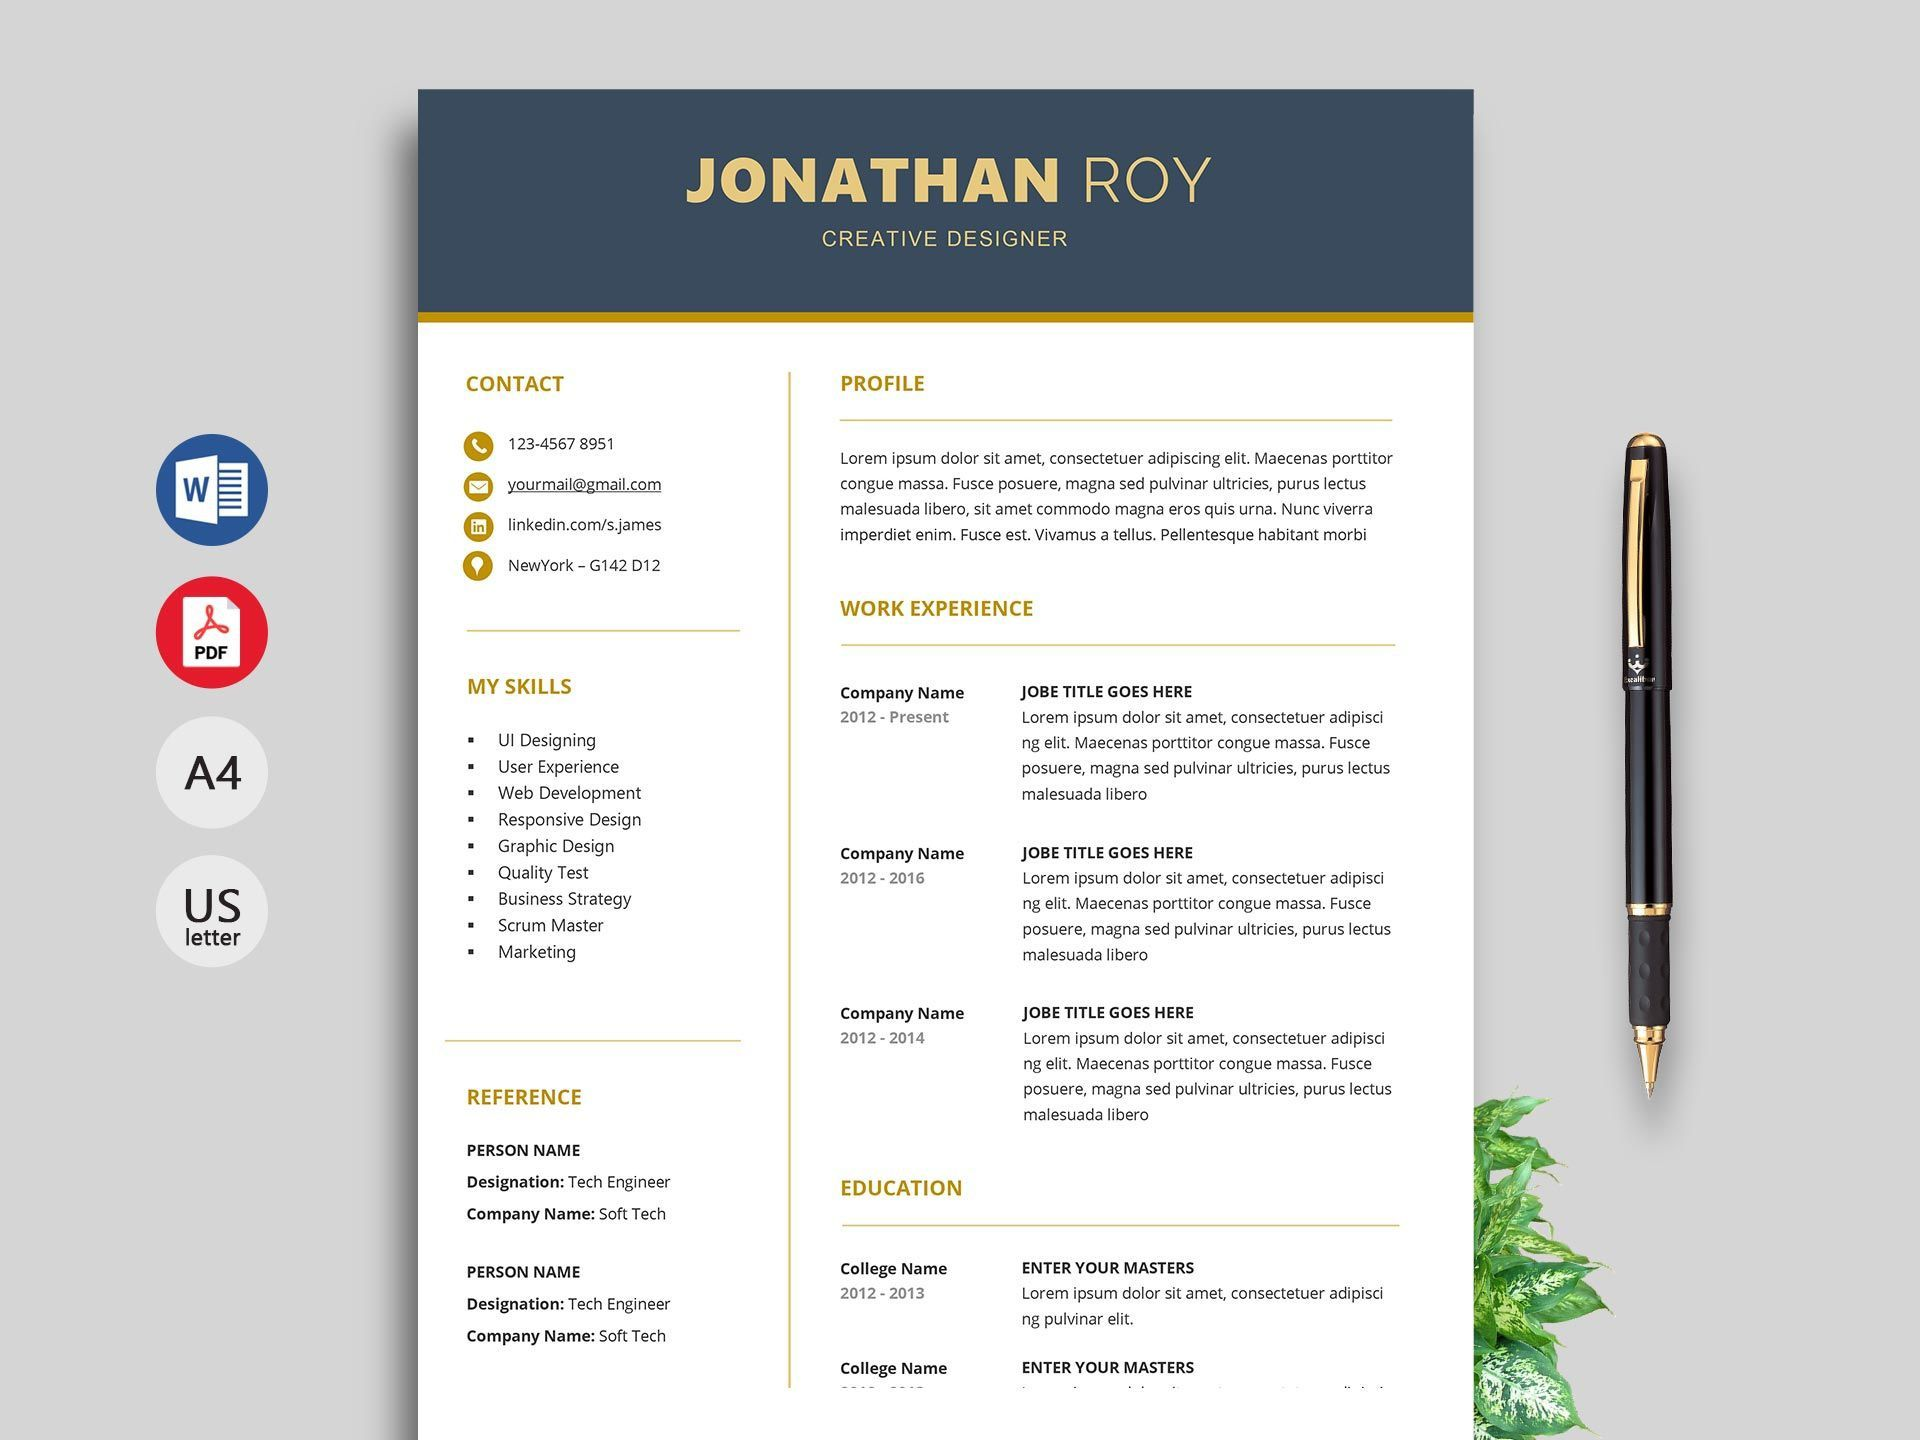 001 Best Professional Resume Template Word Free Download High Resolution  Cv 2020 With PhotoFull